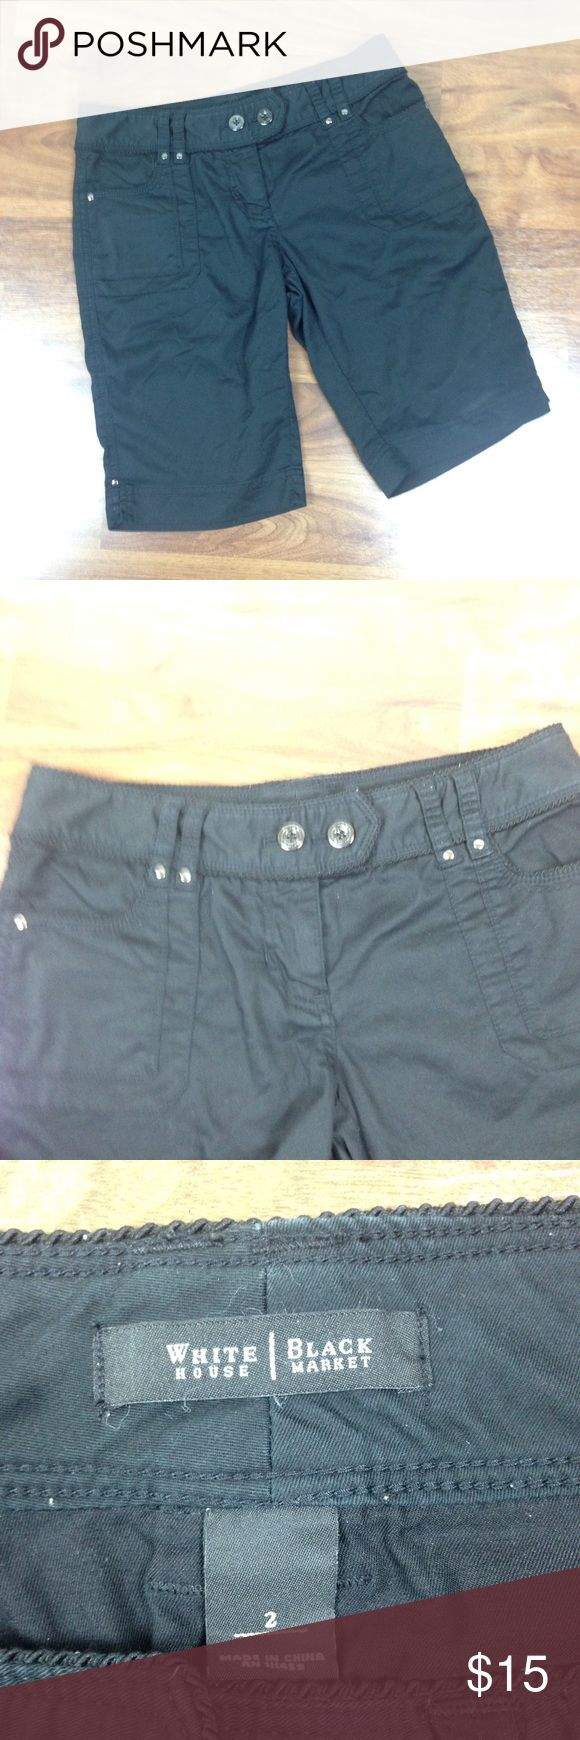 """WHBM Bermuda Shorts Women's Size 0 Black Pockets White House Black Market Shorts Style: Bermuda Shorts Color: Black Size: 2 Condition: Pre-owned, Some pilling on inside seams. Not visible from the outside  Measurements taken with garment lying flat Waist: 15"""" Inseam: 11"""" White House Black Market Shorts"""